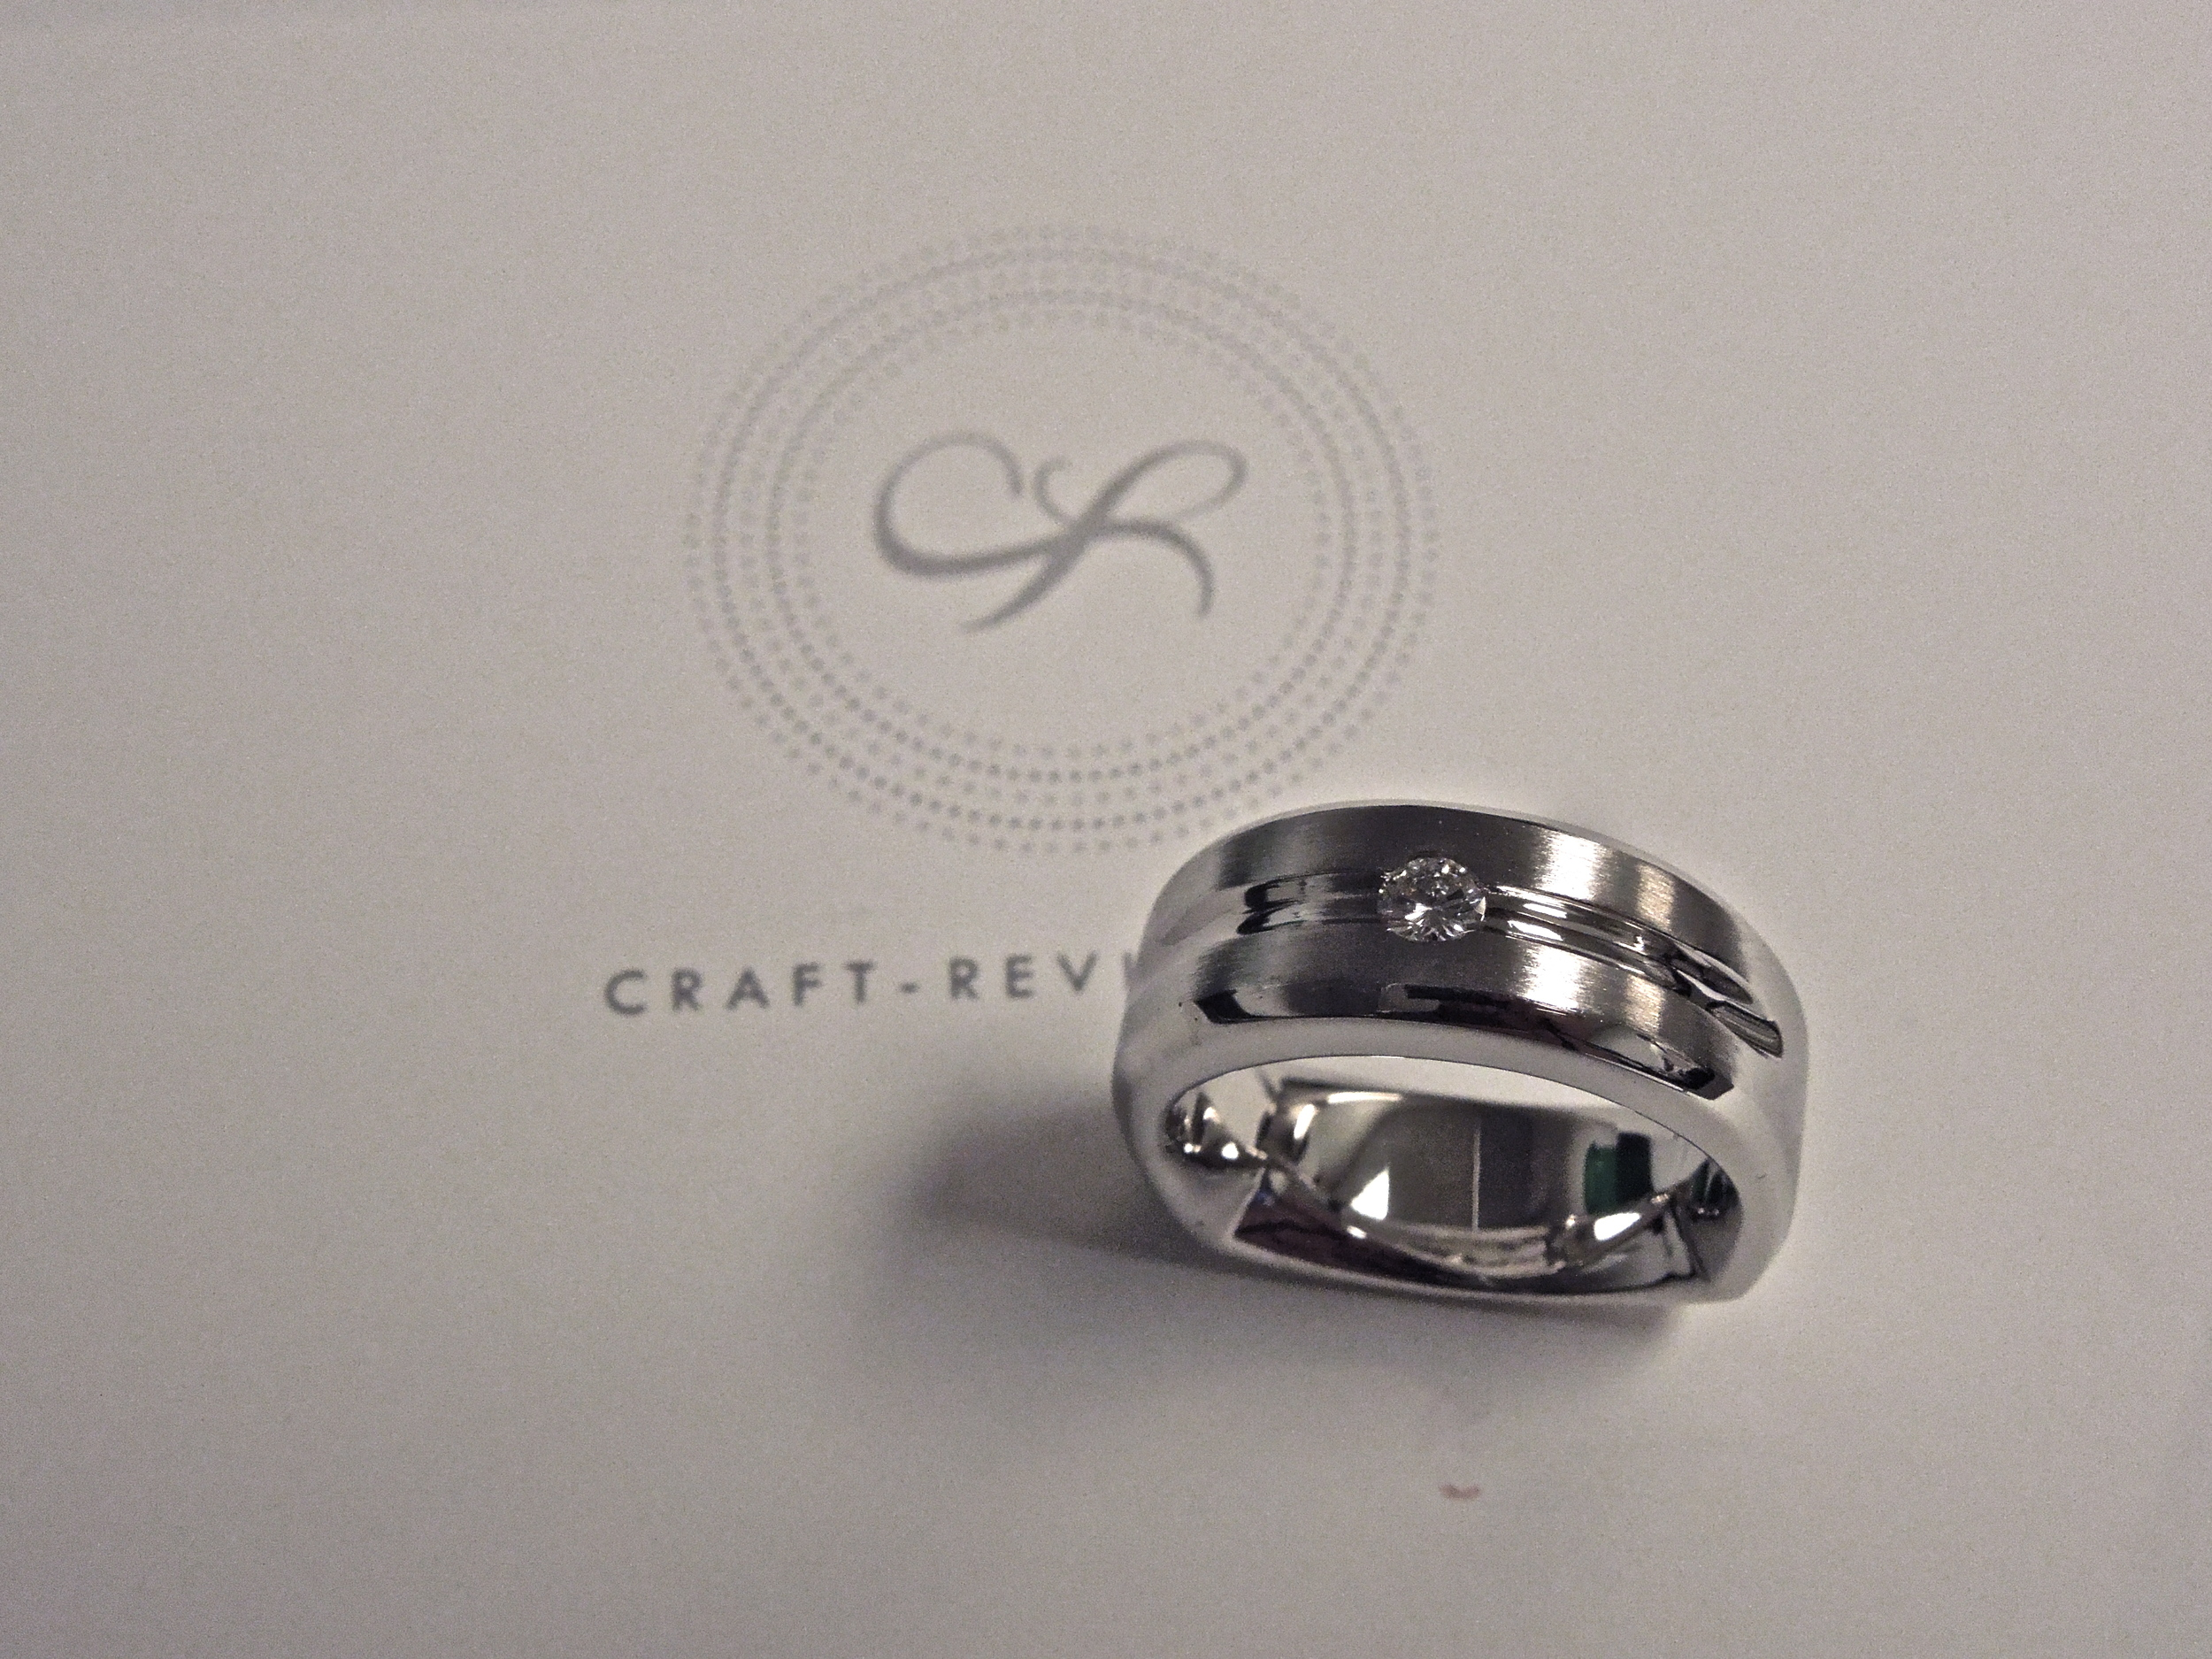 unique-modern-mens-band-wedding-band-white-gold-diamonds-craft-revival-jewelry-store-grand-rapids